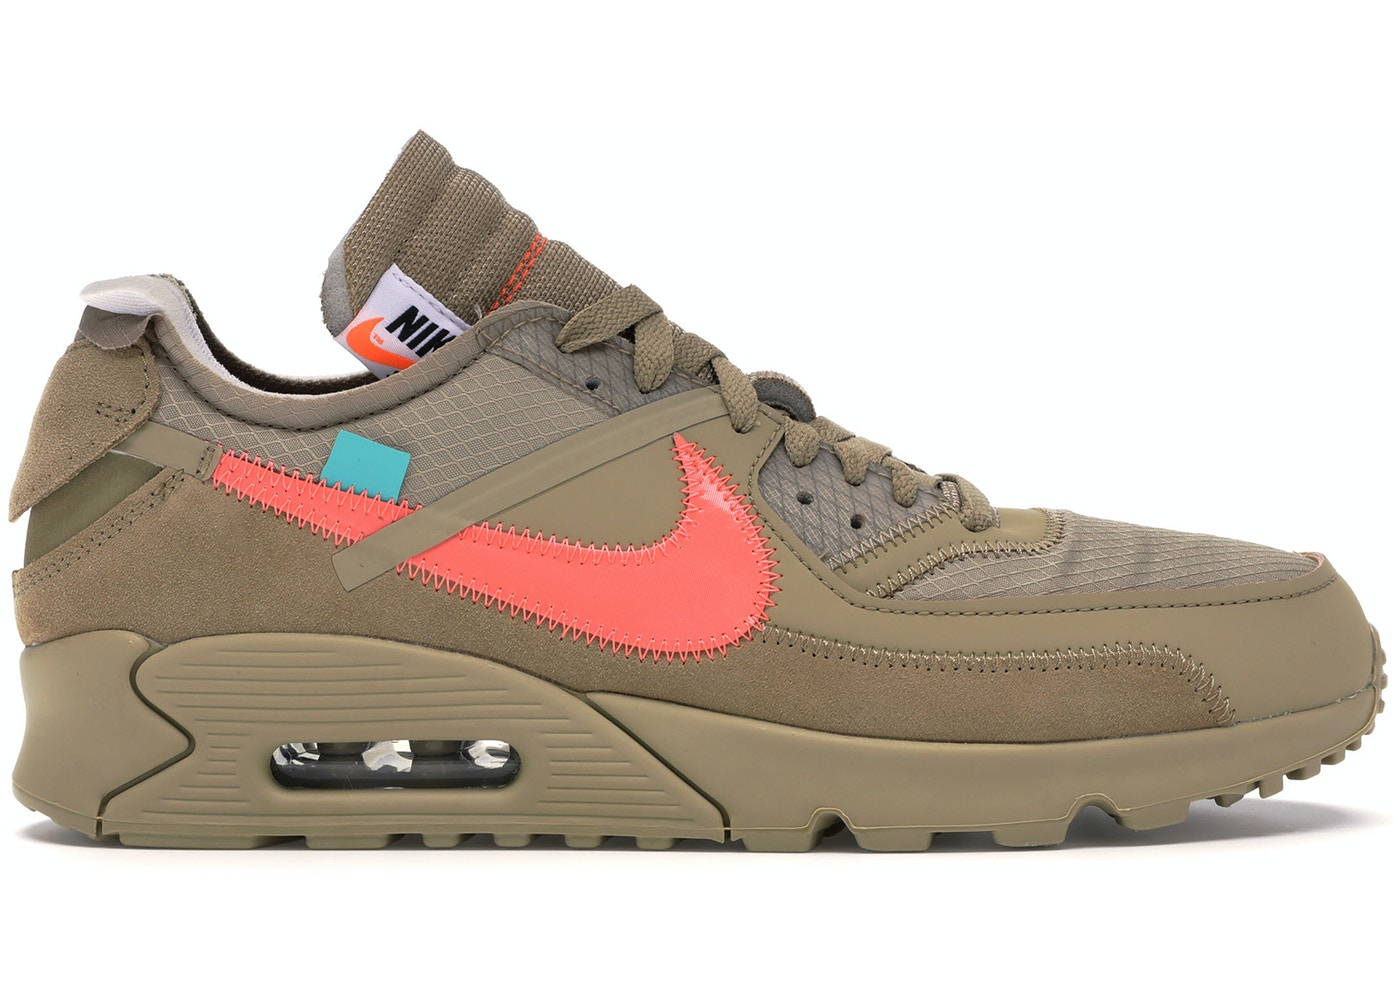 2b9777f257 Air Max 90 OFF-WHITE Desert Ore - AA7293-200